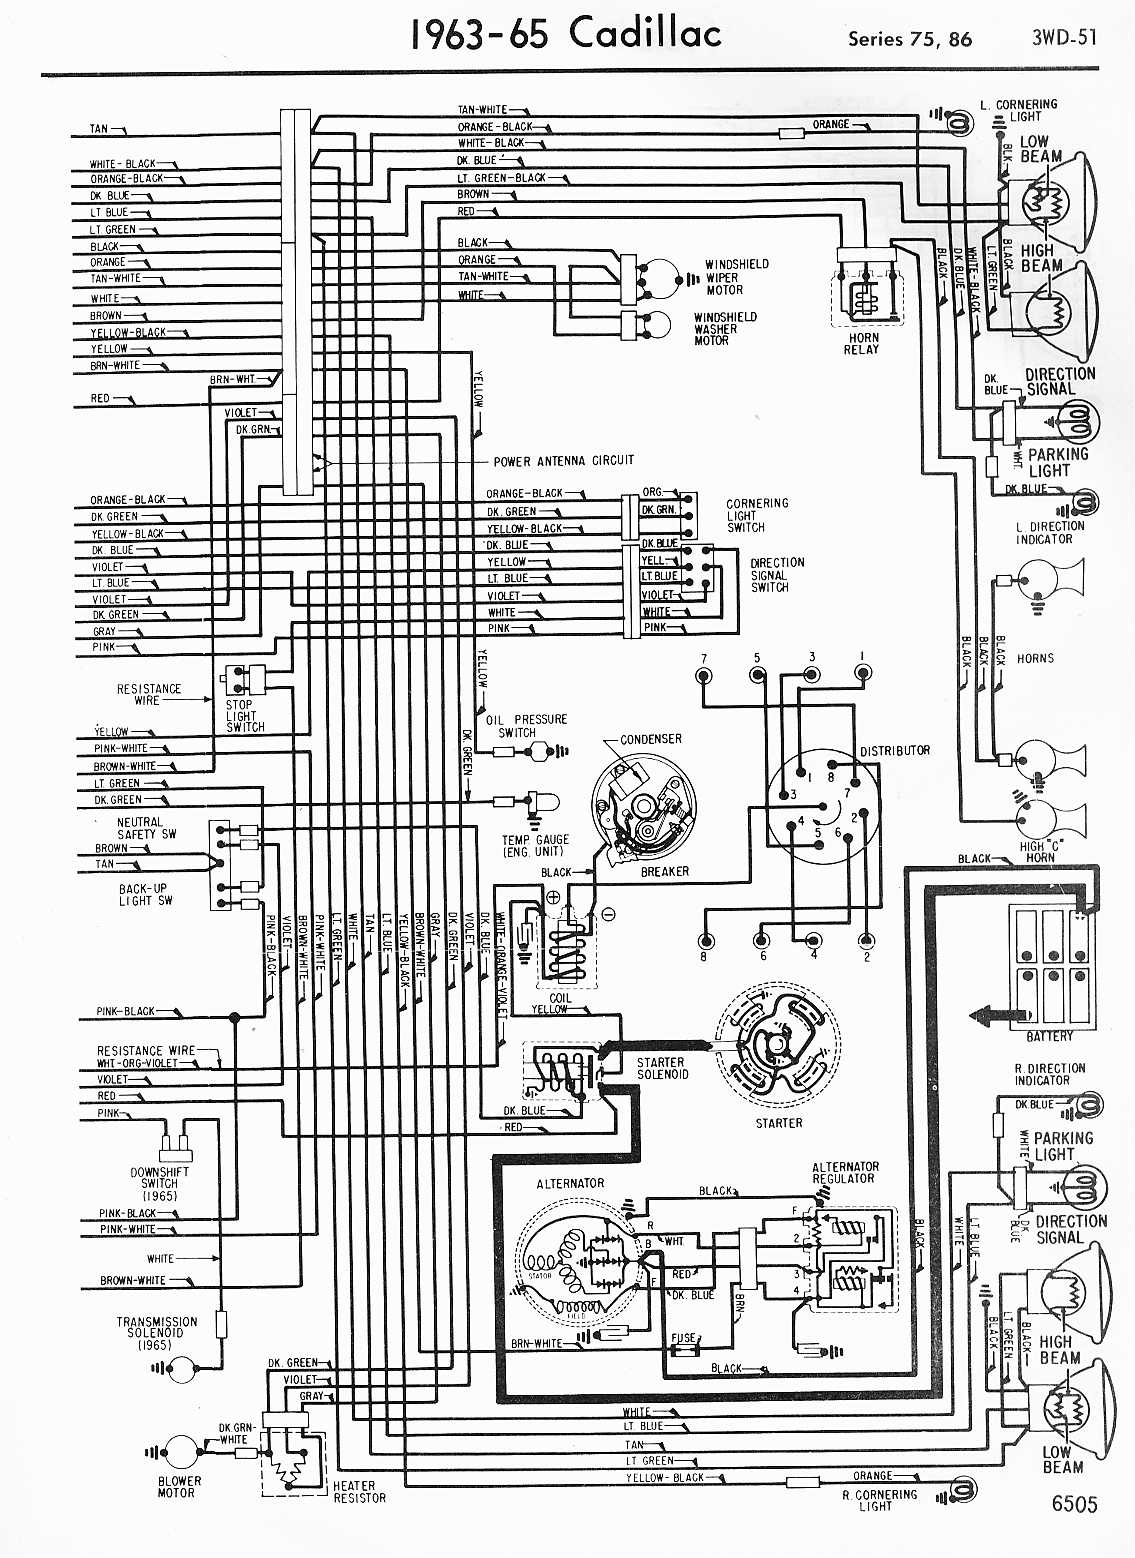 Cadillac Dts Wiring Diagram Opinions About Fuse Box Cts 2008 Diagrams 1957 1965 Rh Oldcarmanualproject Com 2006